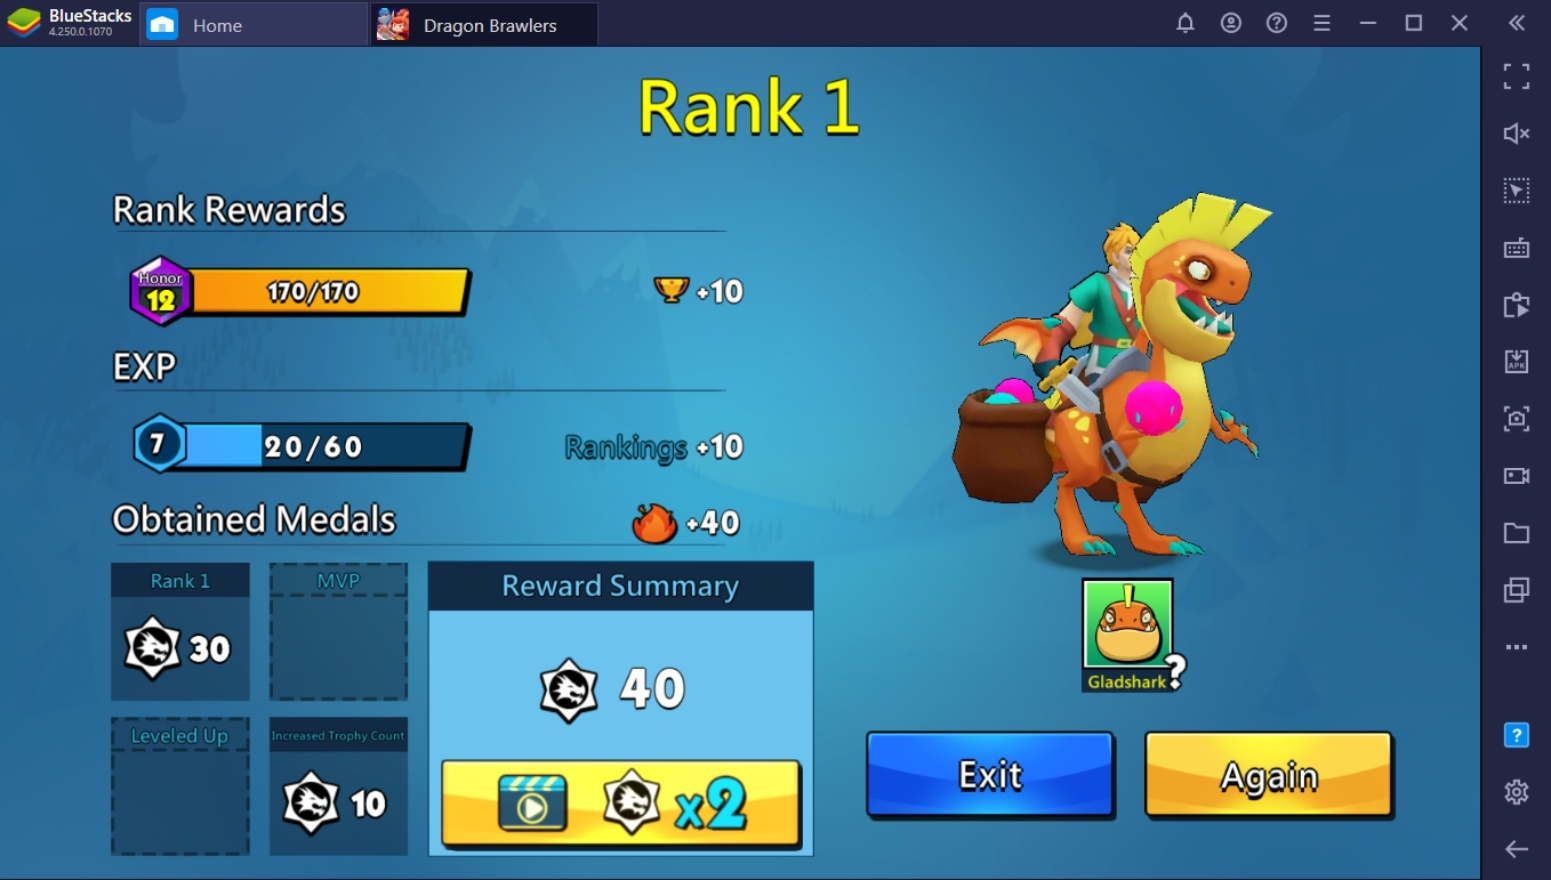 Tips and Tricks To Win More in Dragon Brawlers